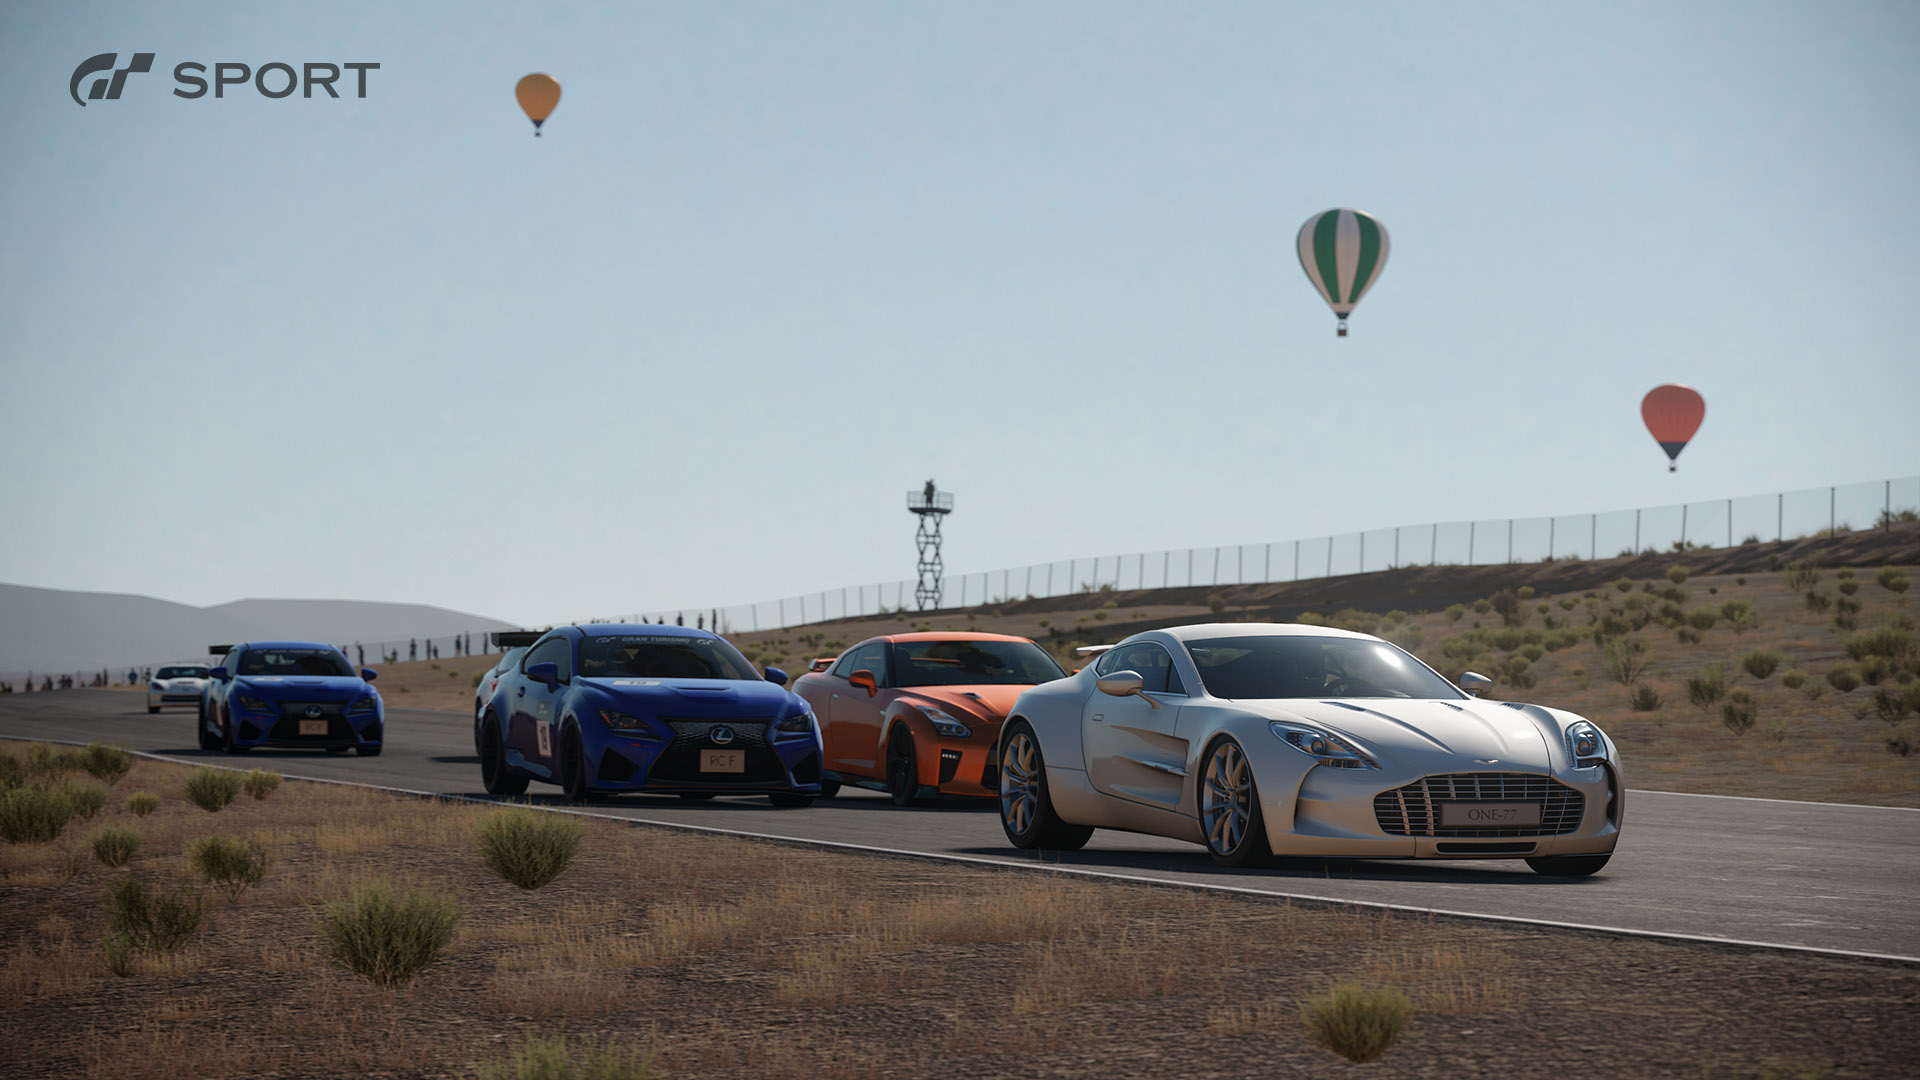 Polyphony Digital and Sony have announced the release date for Gran Turismo Sport!